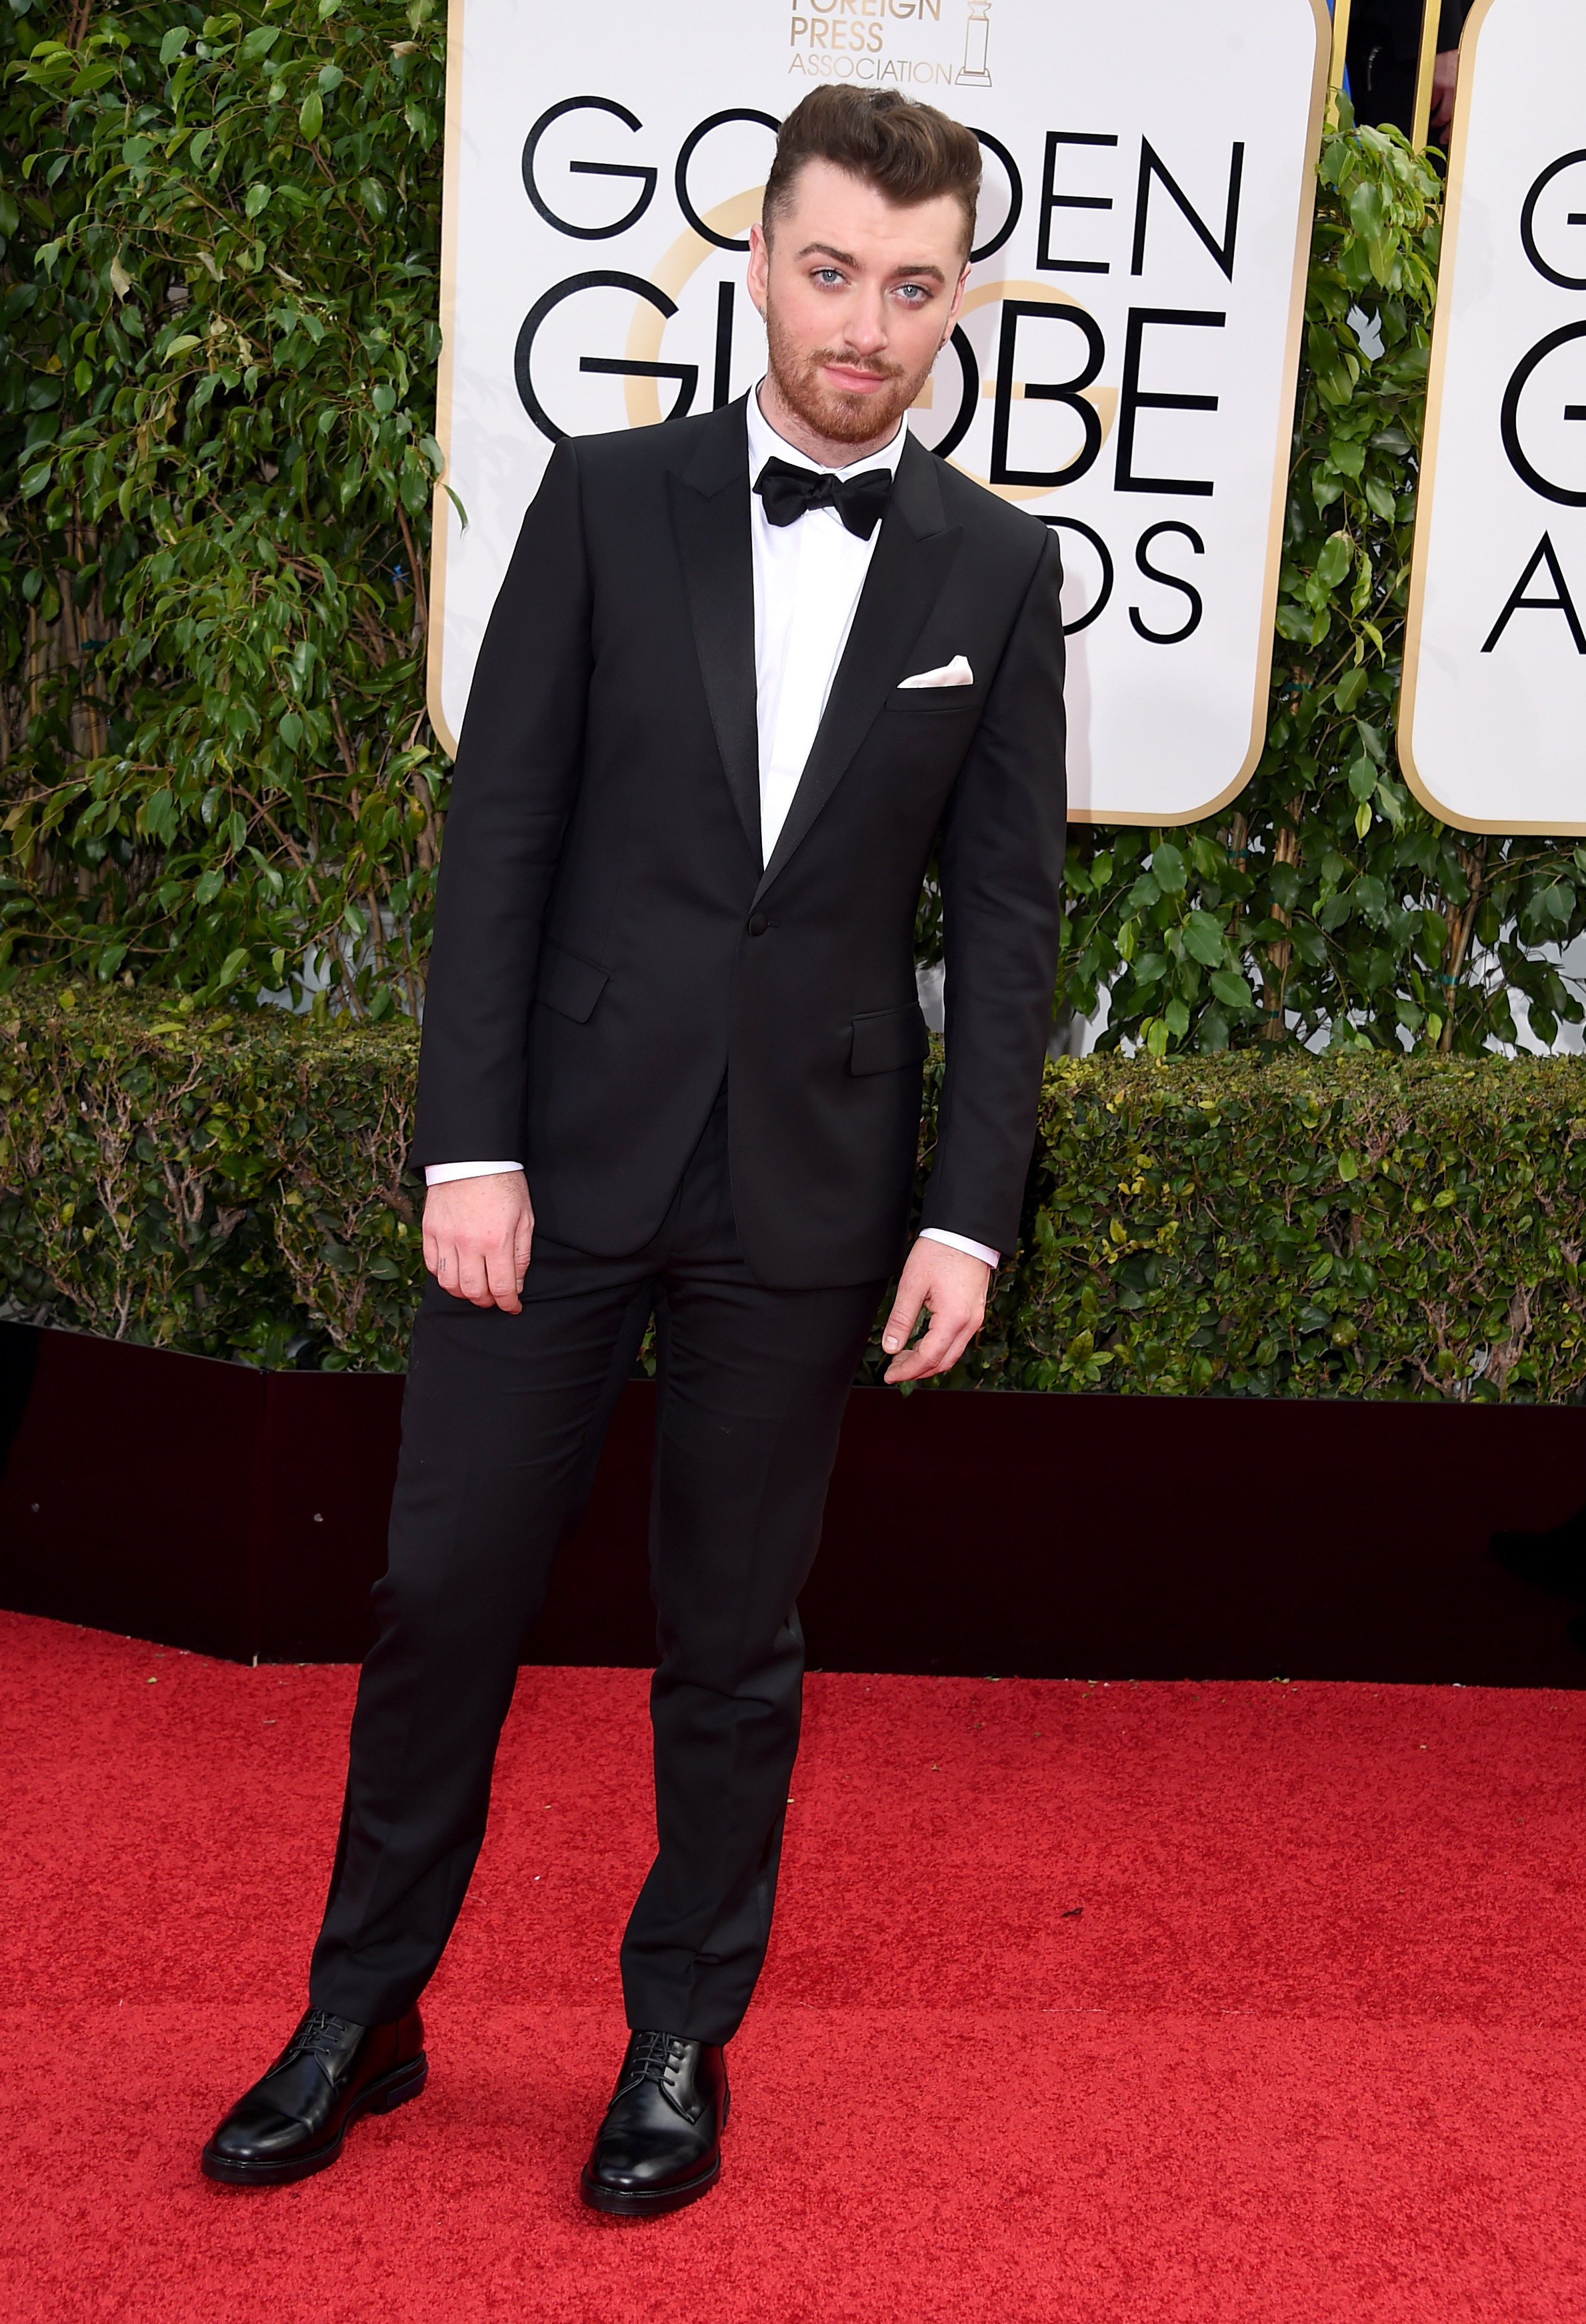 Sam Smith arrives to the 73rd Annual Golden Globe Awards on Jan. 10, 2016 in Beverly Hills.